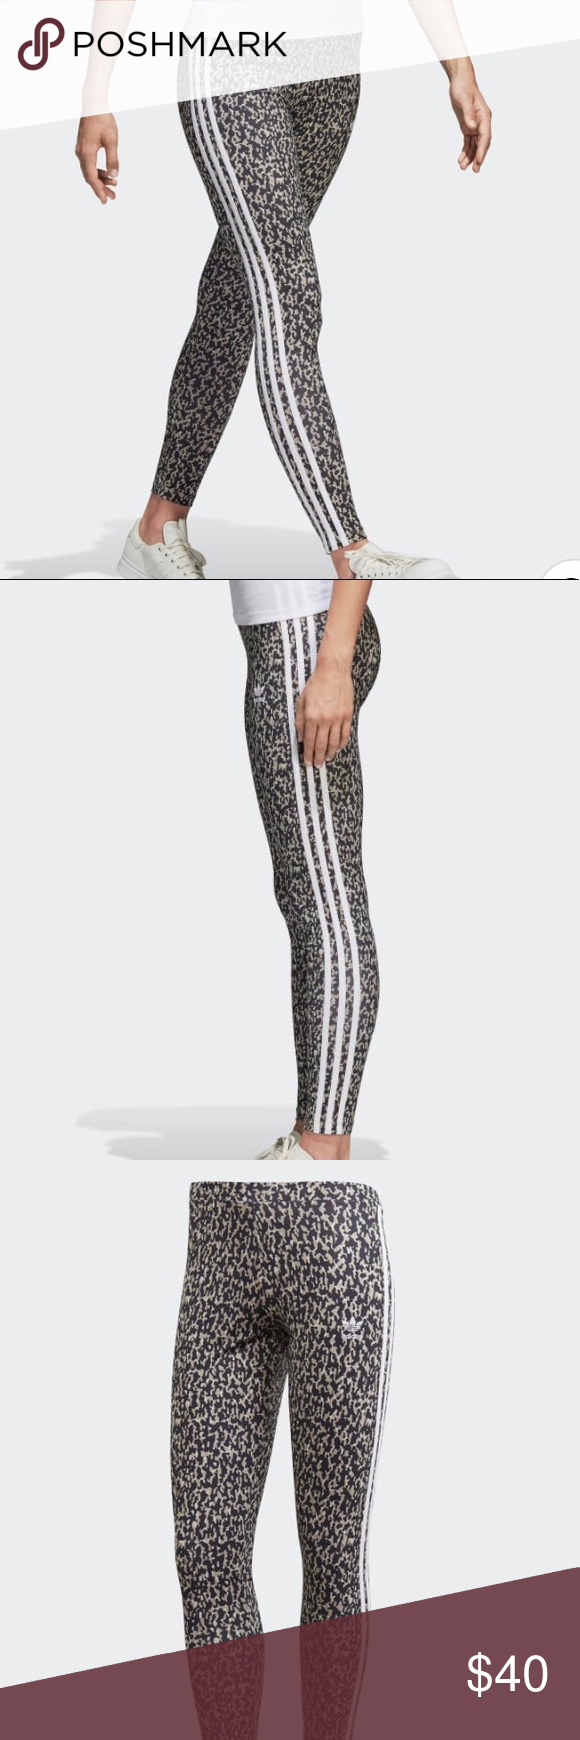 93c2e59f3a1 Adidas Leoflage Leggings adidas leoflage leggings brand new with tags,  never worn in perfect condition all offers welcome! adidas Pants Leggings